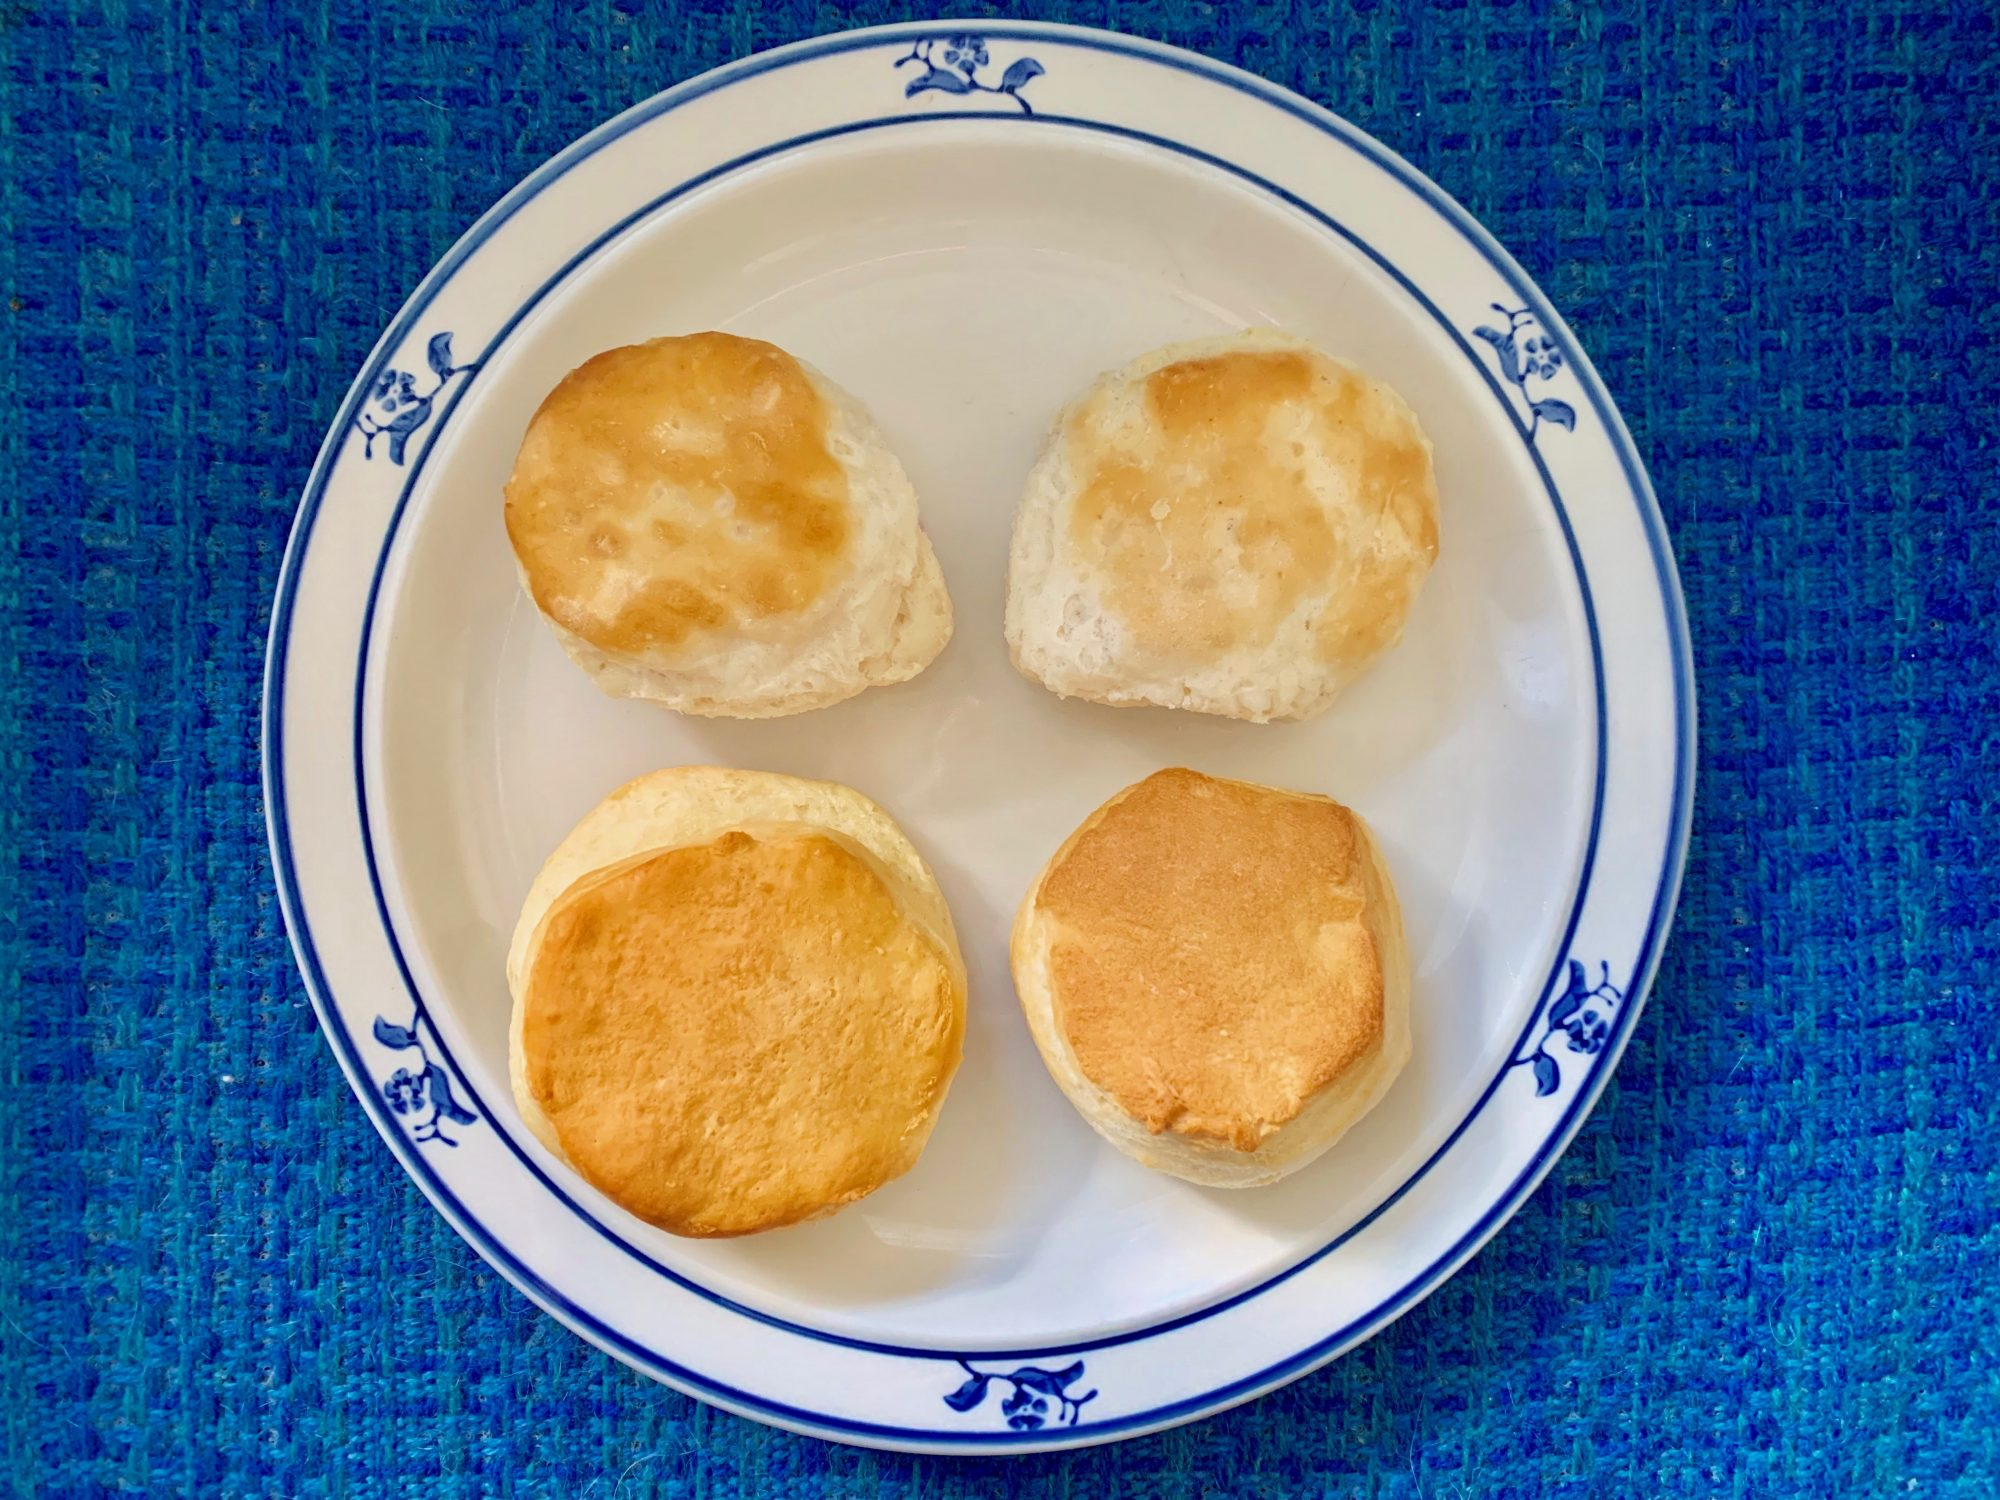 We Tried The Most Popular Biscuit Brands, These Are Our 4 Favorites